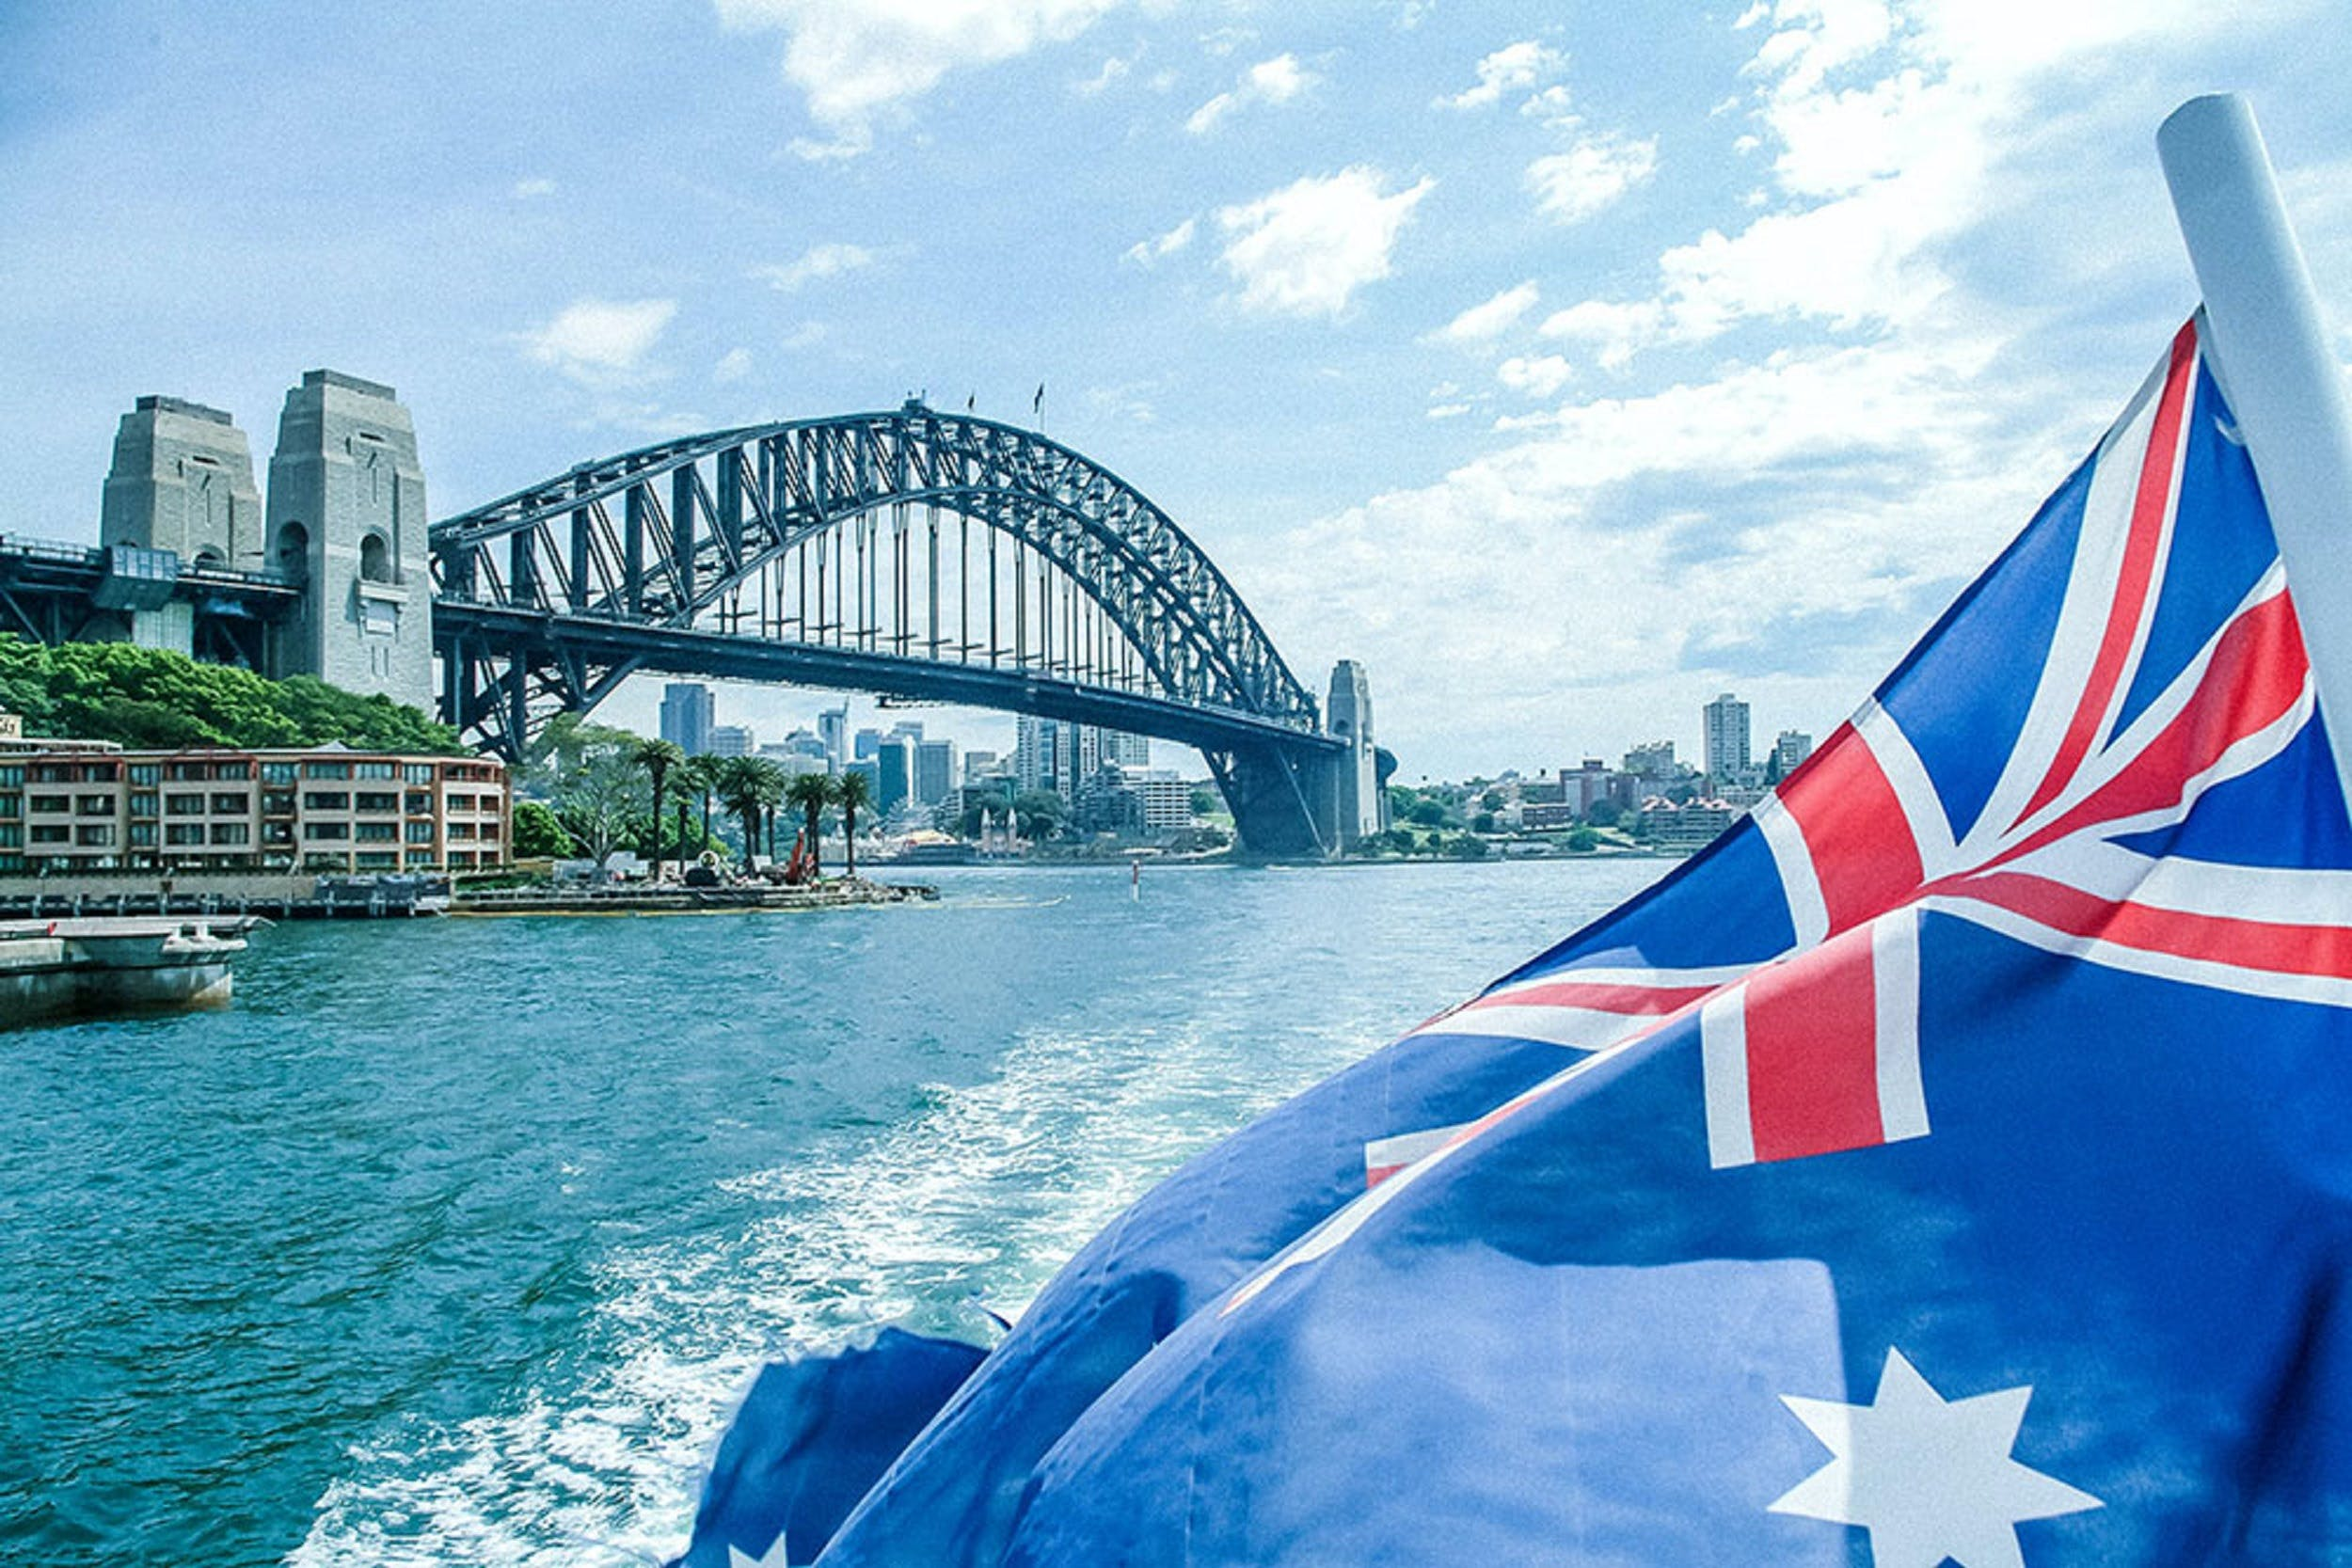 Australia Day Lunch and Dinner Cruises On Sydney Harbour with Sydney Showboats - Tourism Brisbane